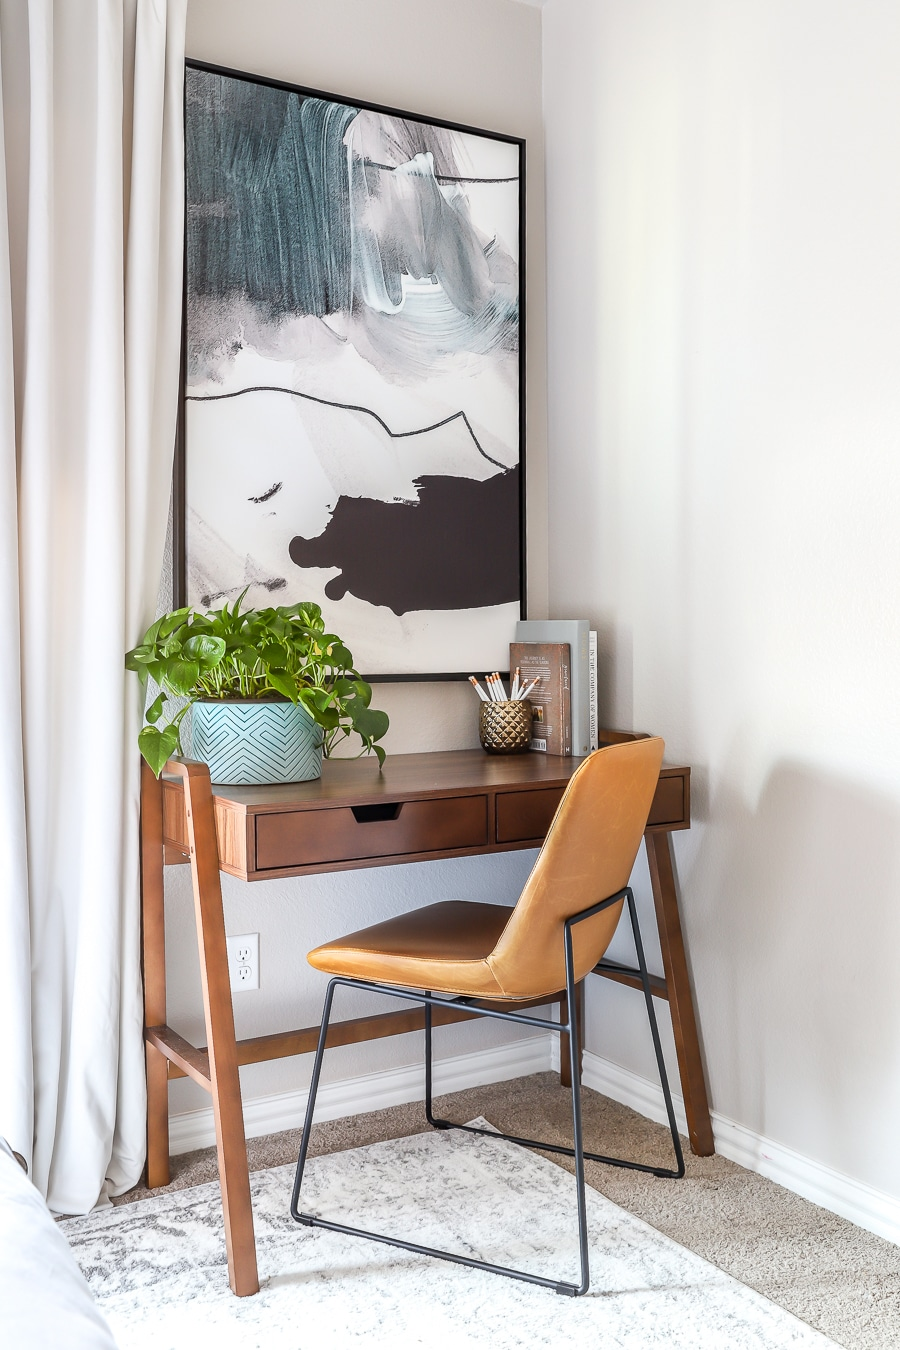 Guest bedroom makeover with desk area